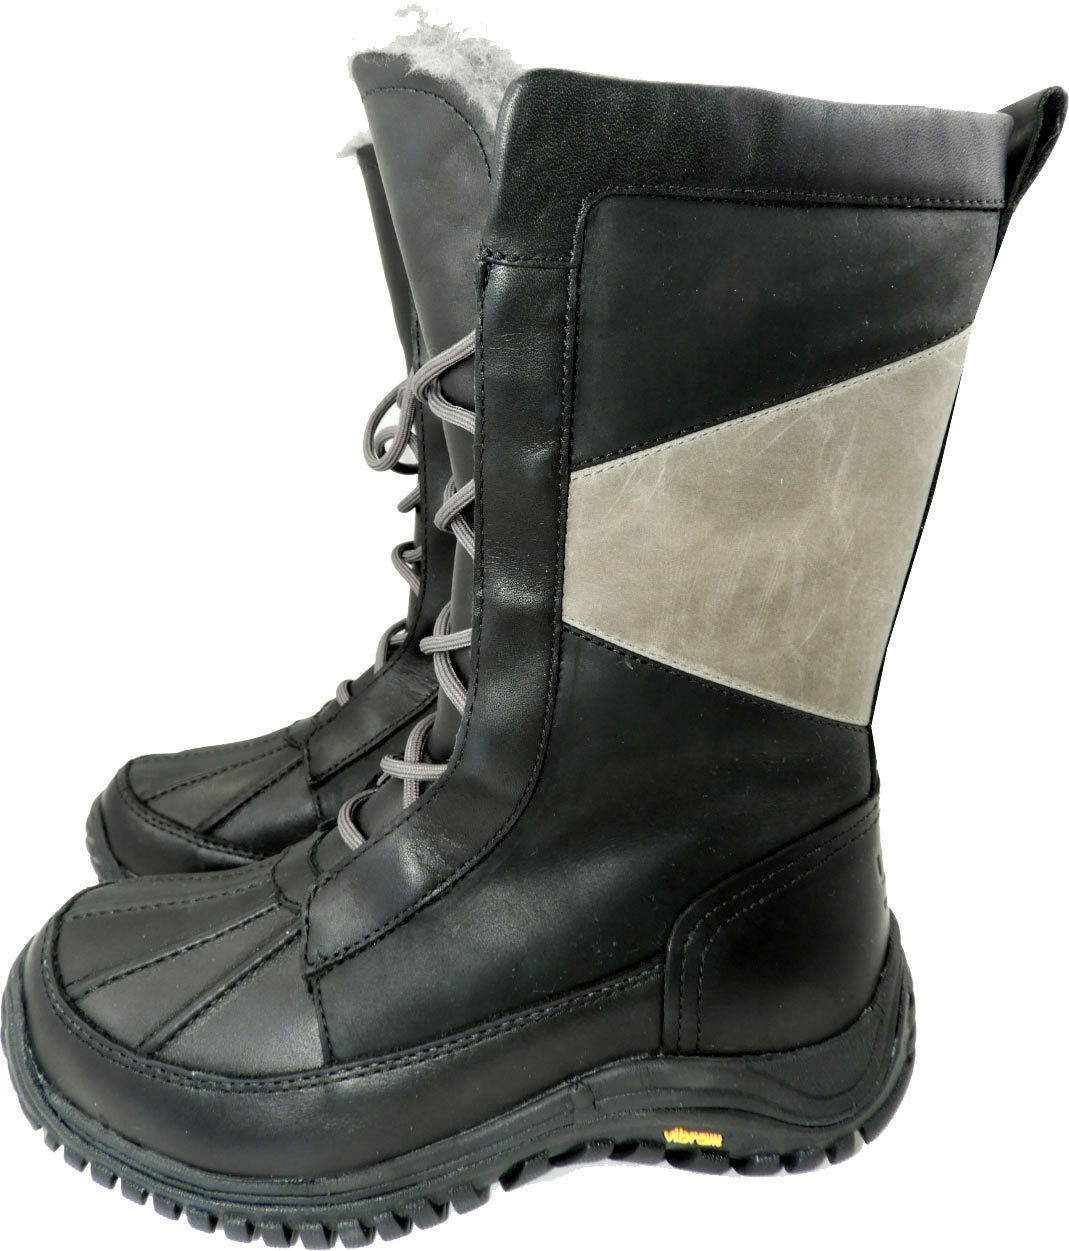 a083ca42d33 Ugg Australia Snow Boot: 11 listings